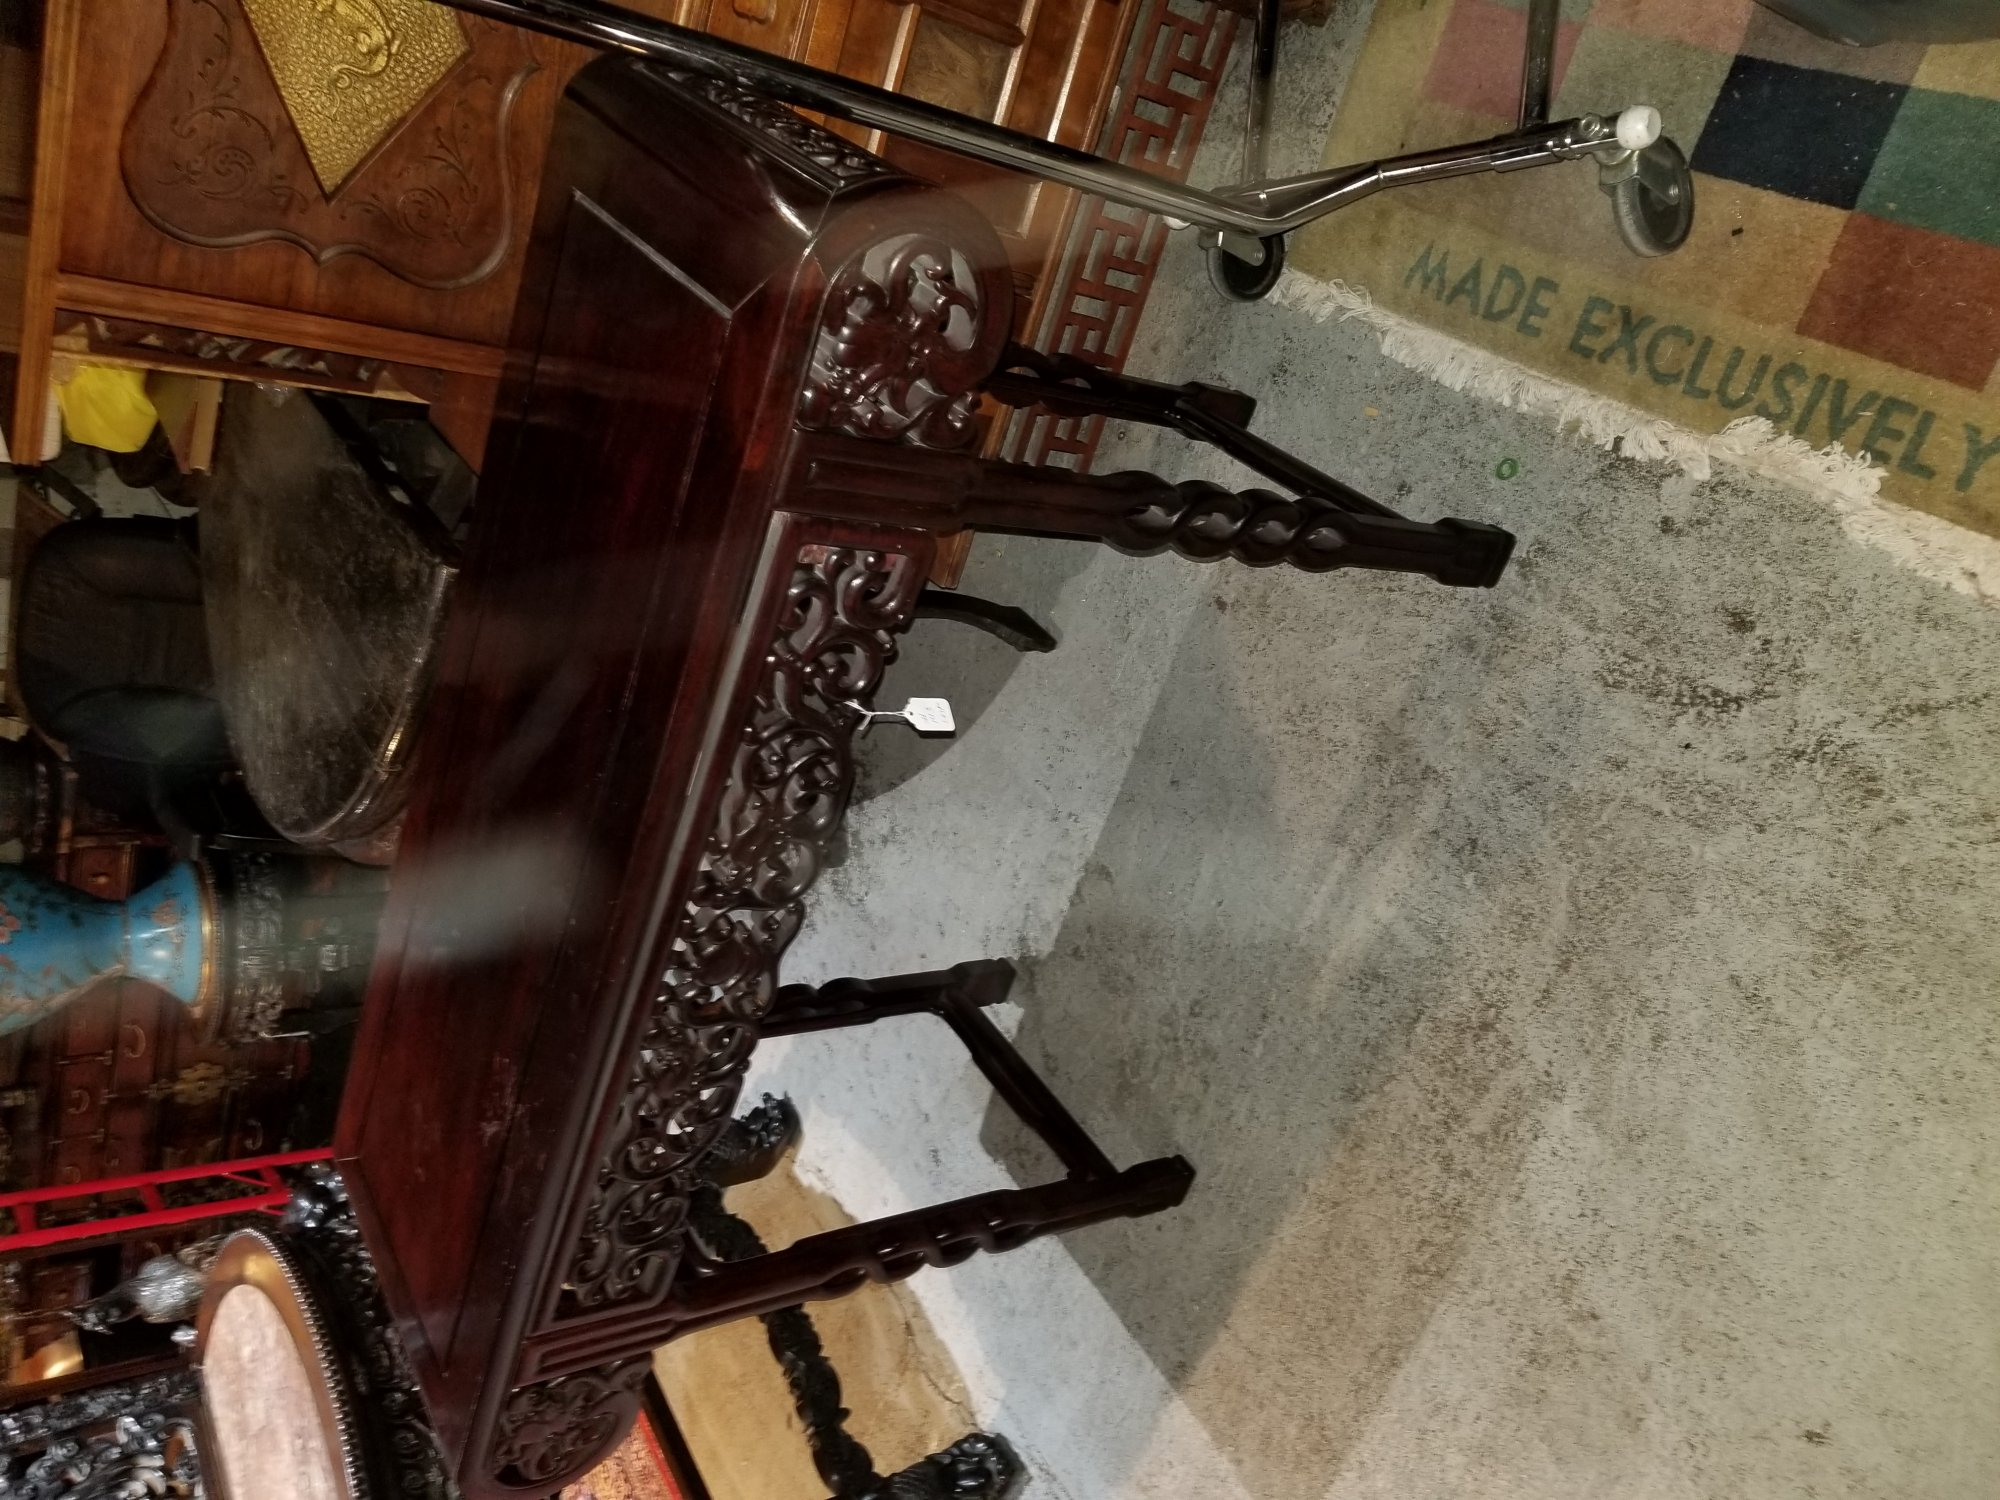 20th century Chinese high table approximately 4ft tall 4 ft wide and 18 inches deep PET